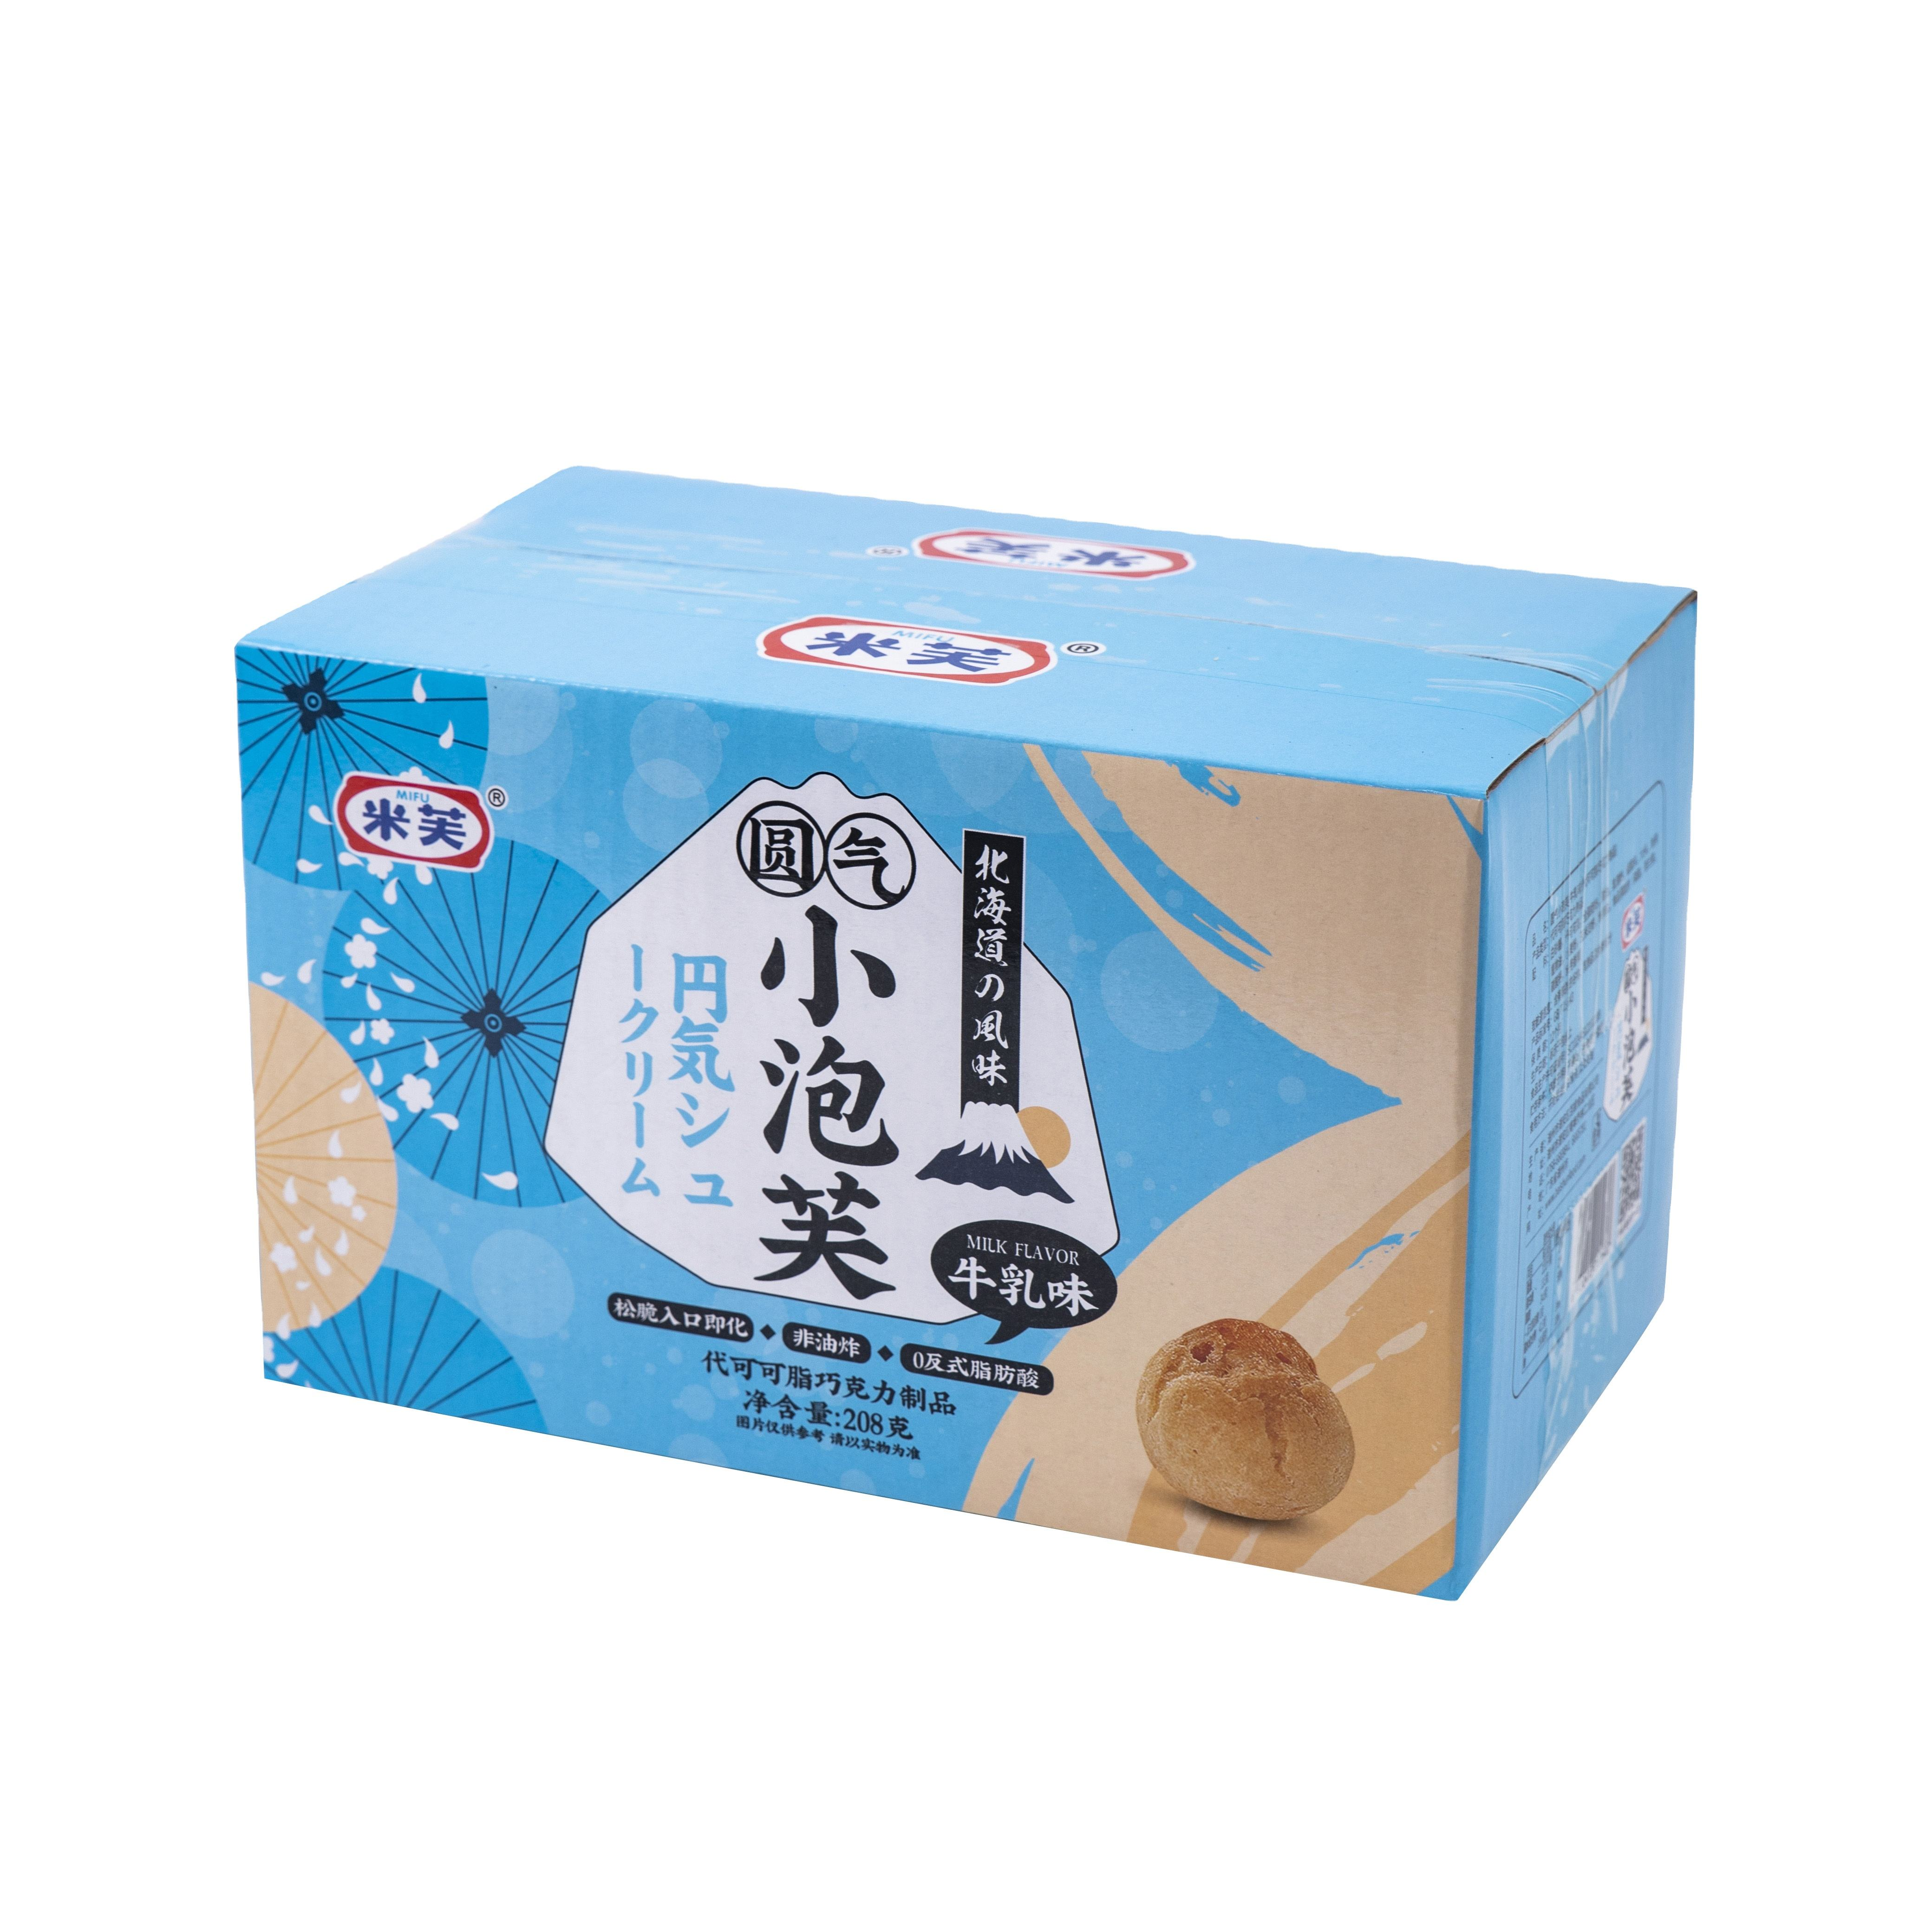 New product Puffed food milk flavor white chocolate wafer biscuit for kids